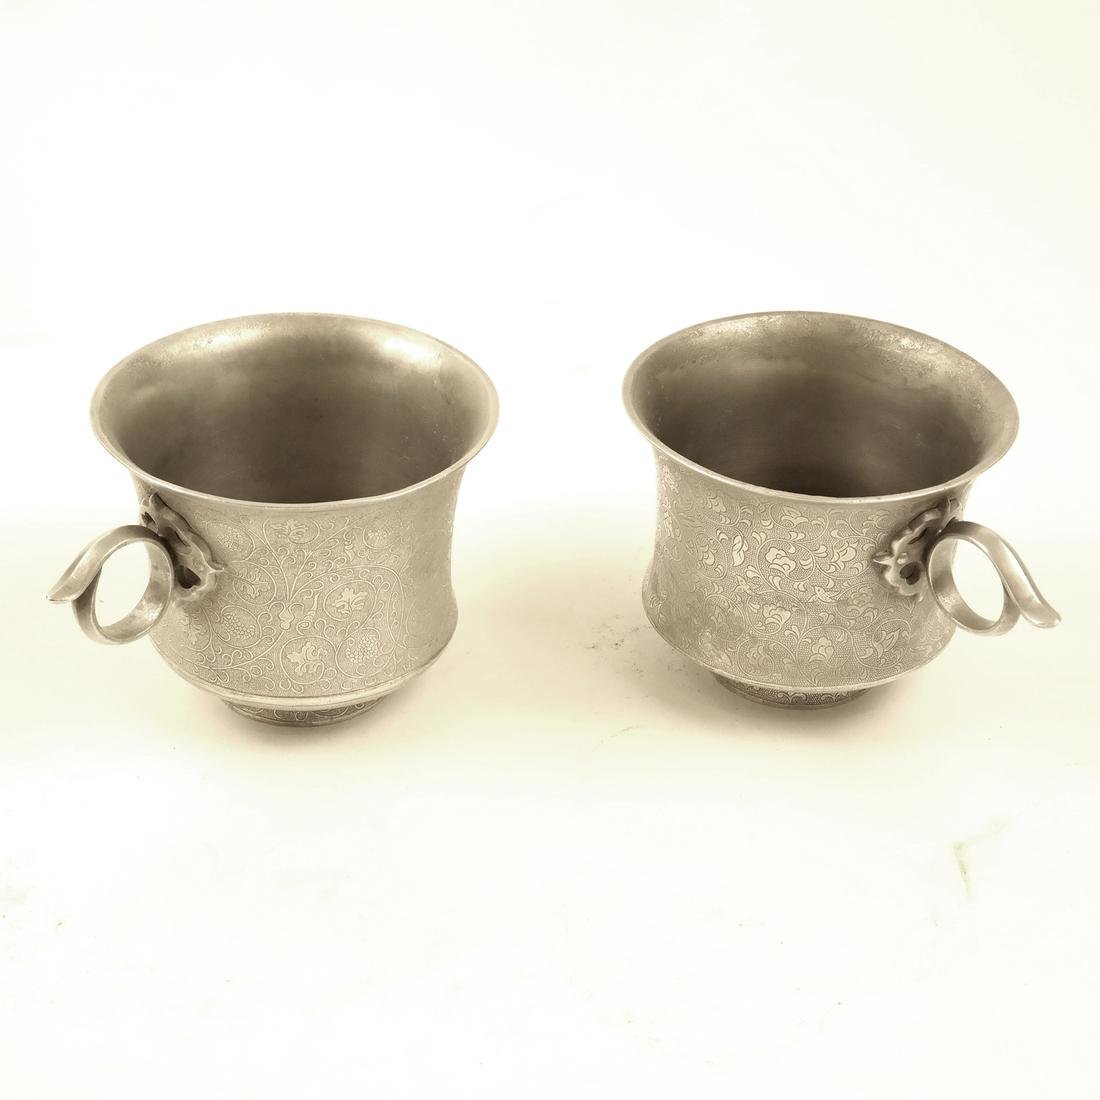 A PAIR OF SMALL SILVER WAISTED CUPS